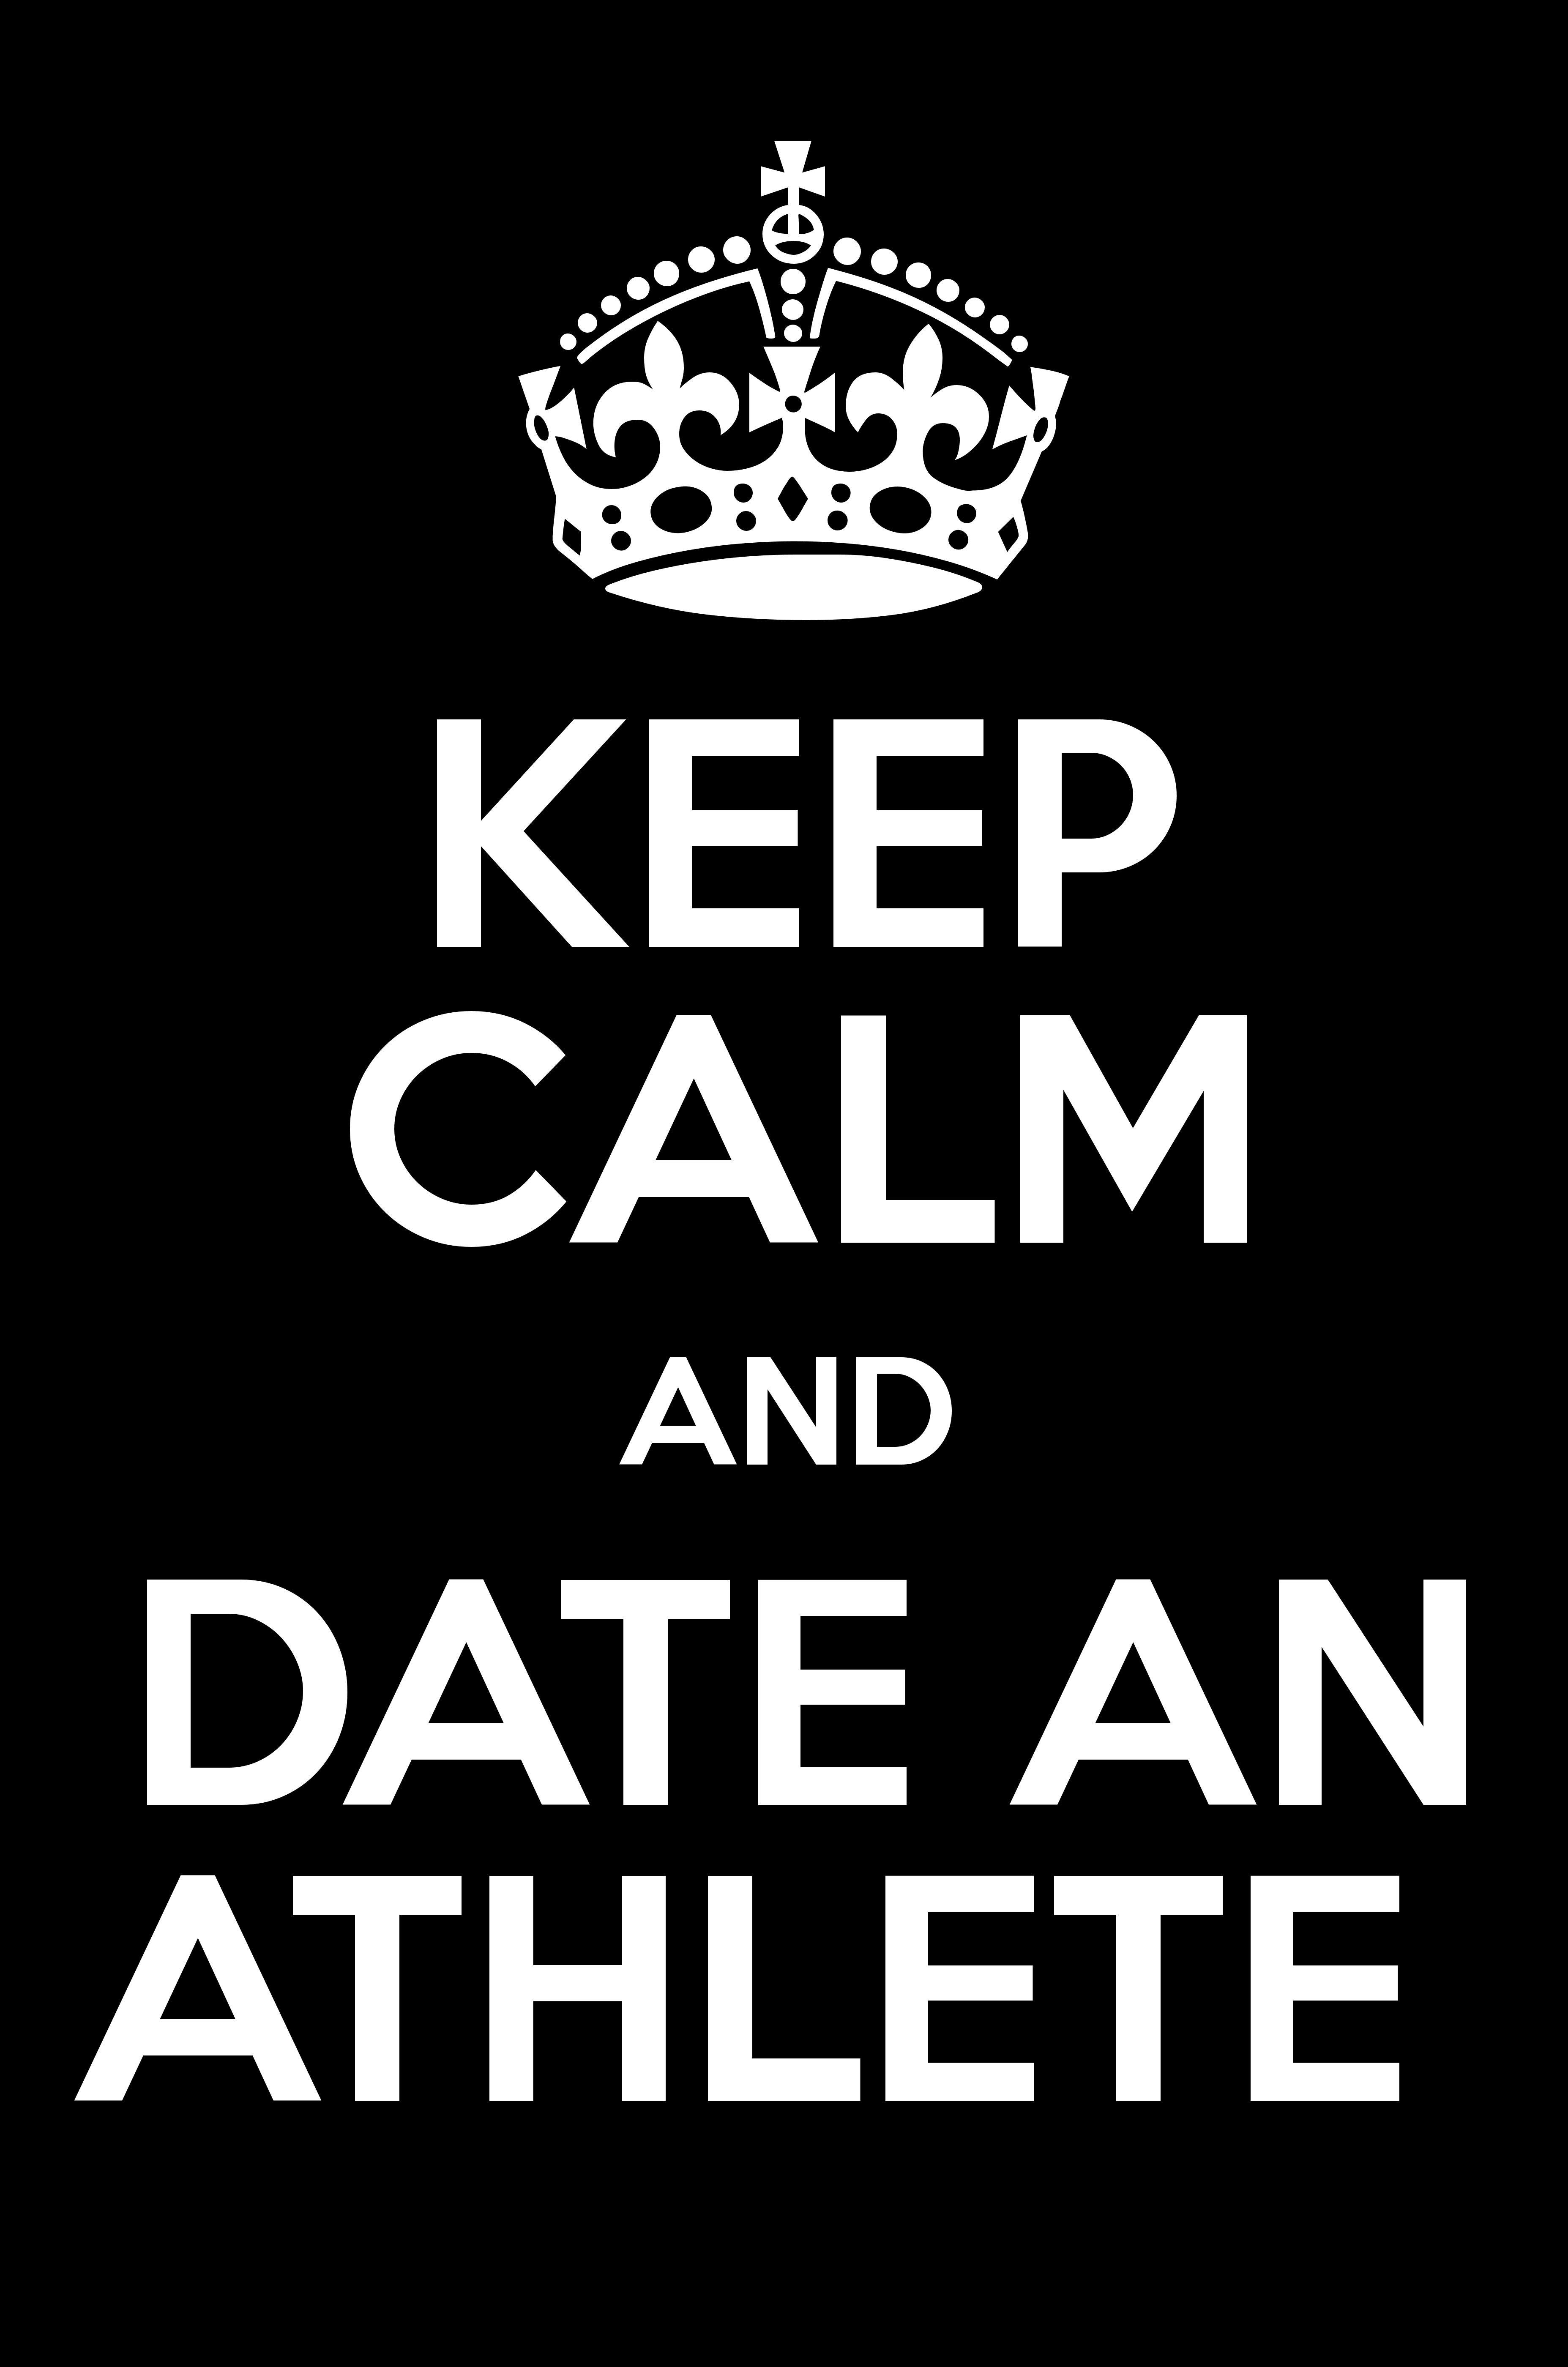 Model and athlete dating poster design